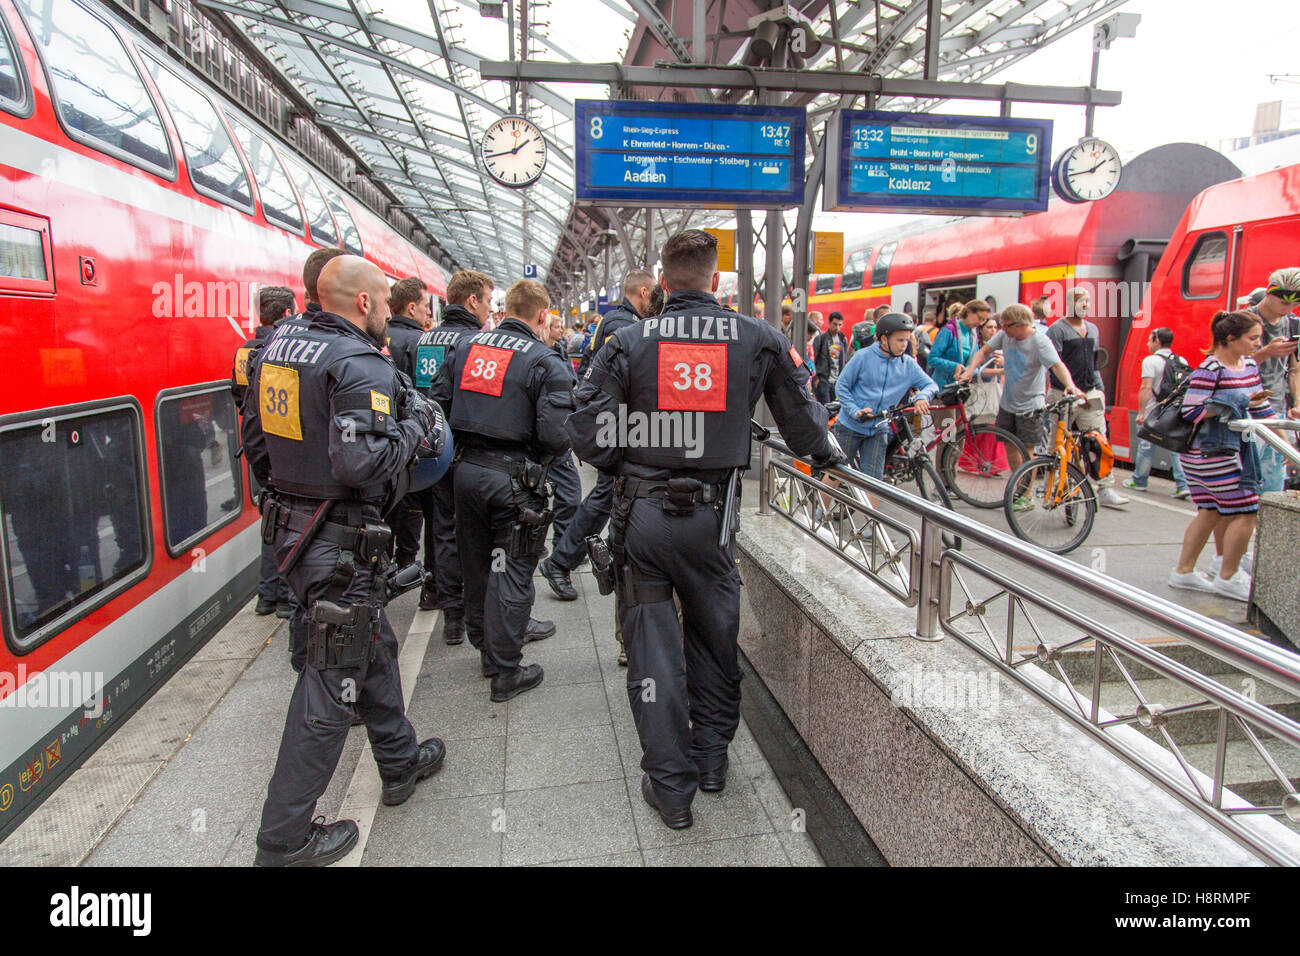 Police, policemen of the federal police on a platform of the main station in Cologne, Germany, riot police unit - Stock Image